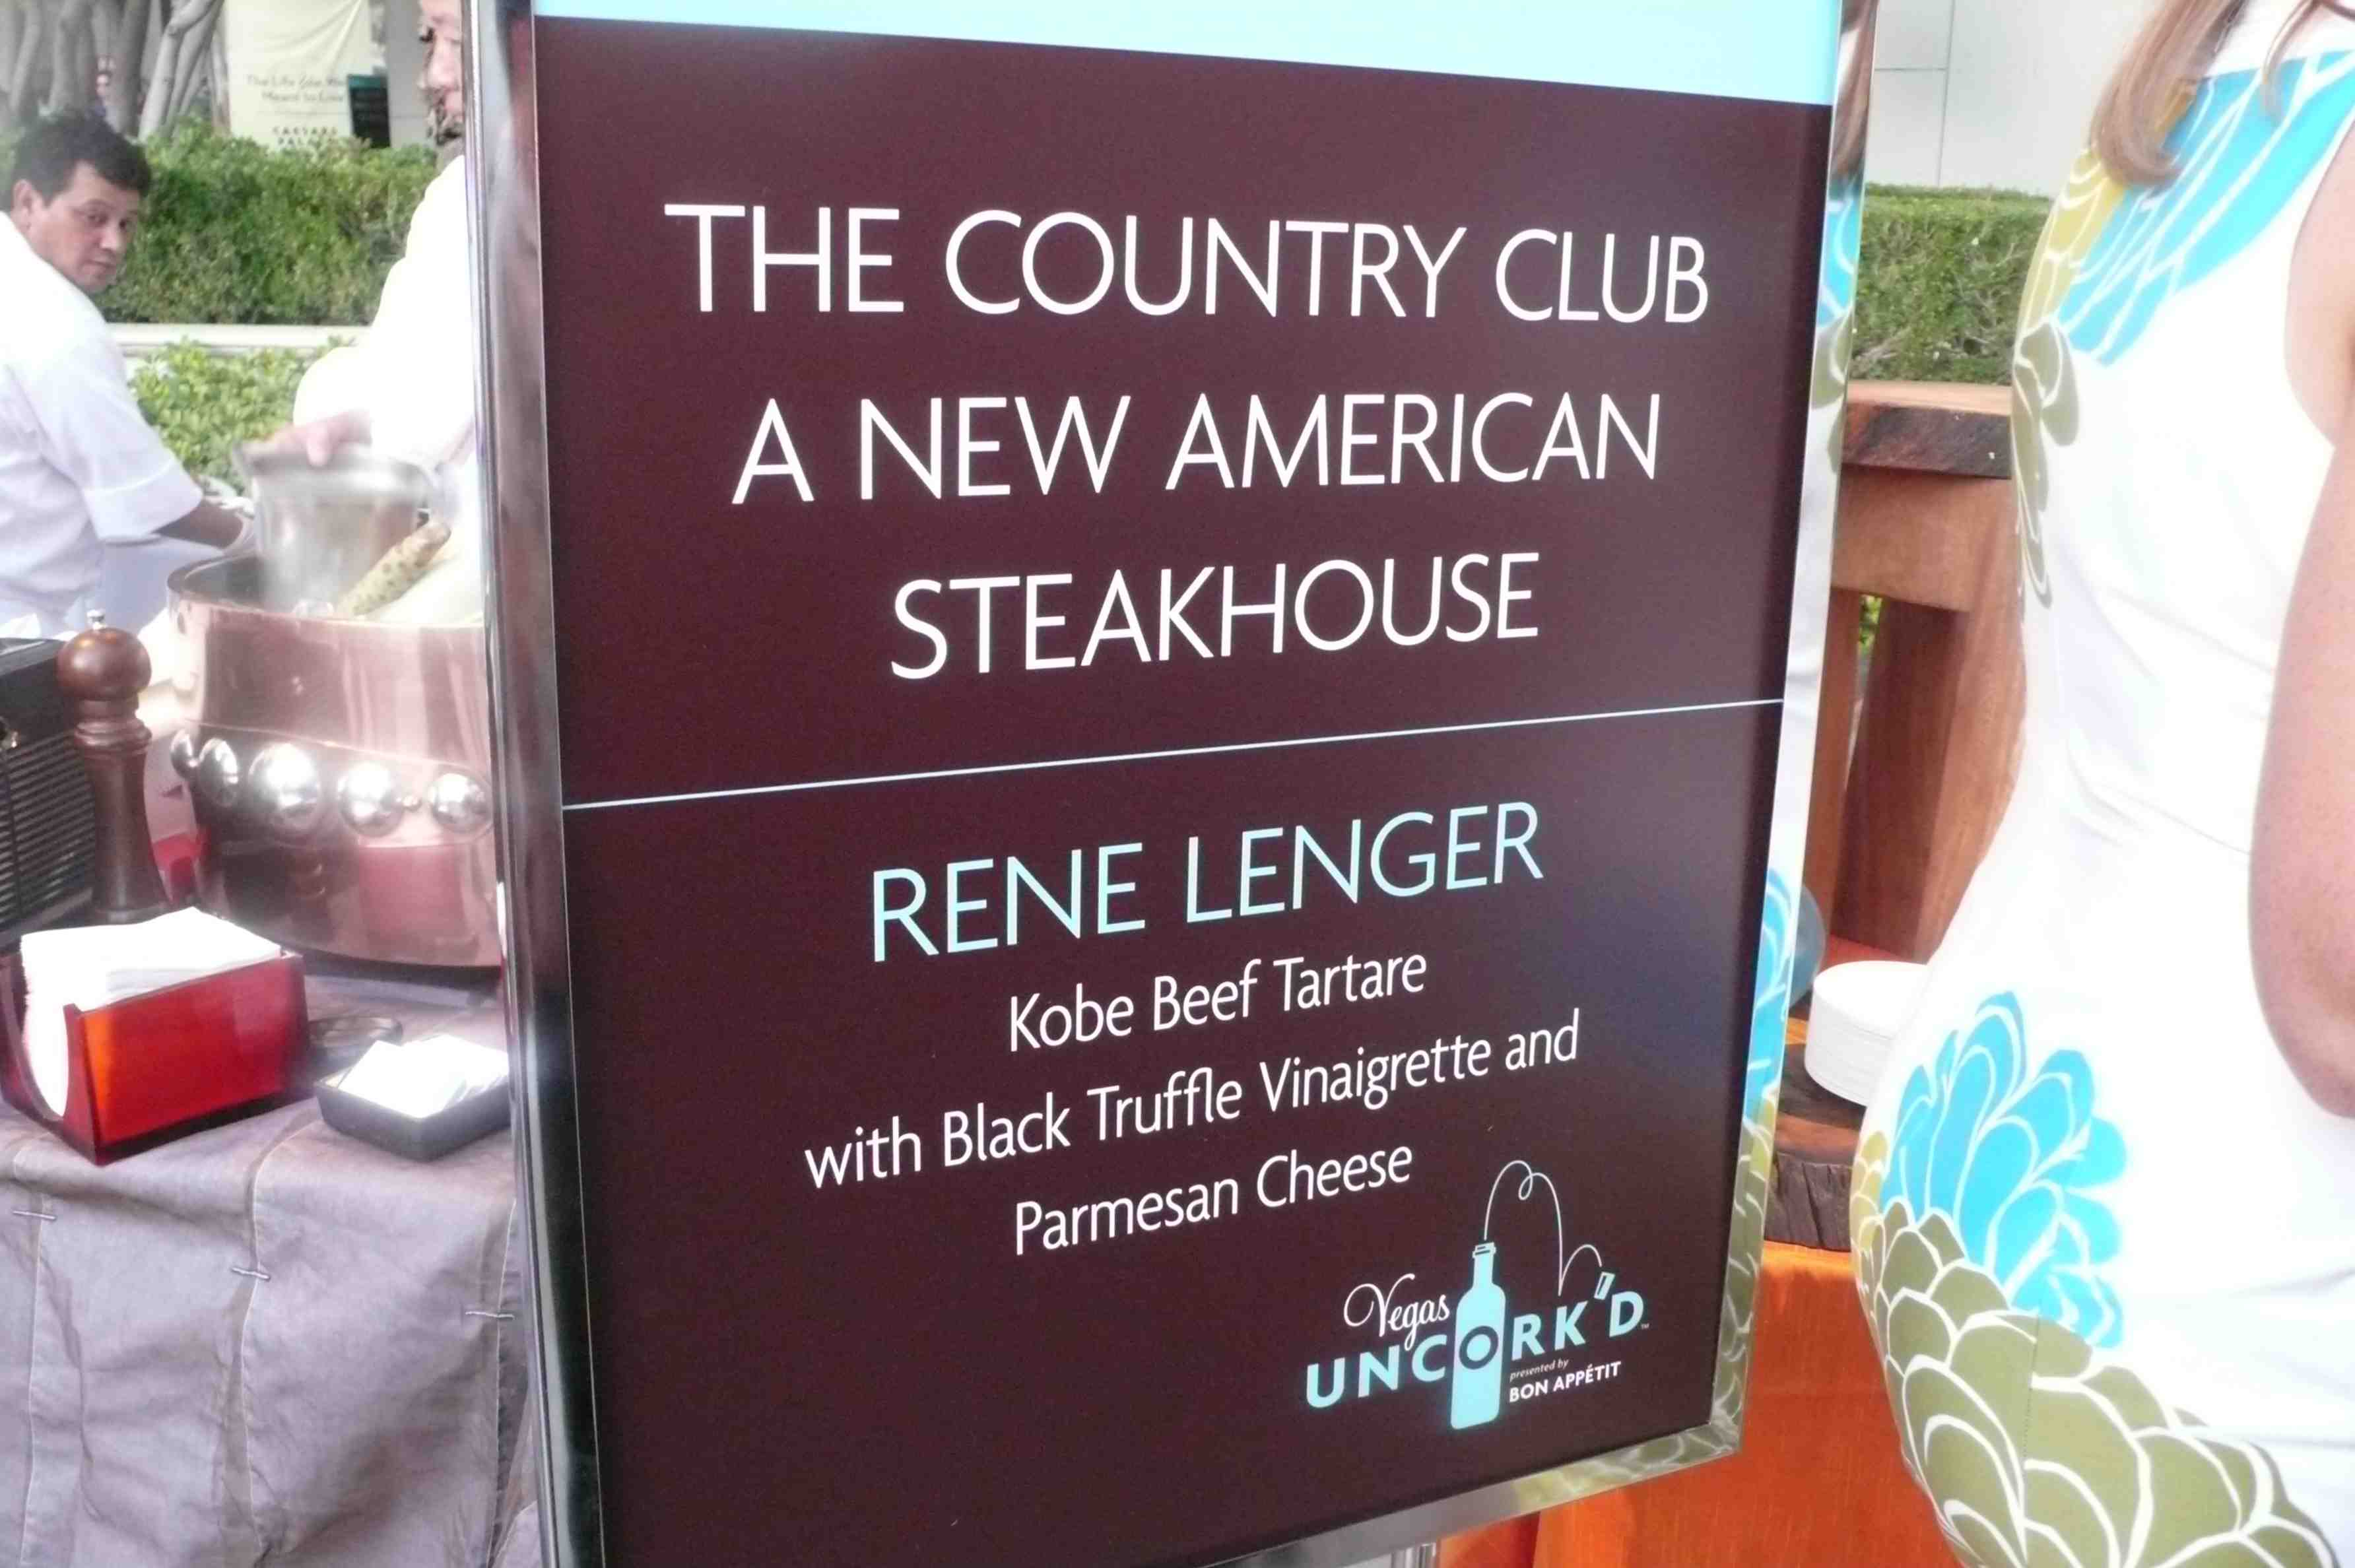 The Country Club New American Steakhouse, Wynn